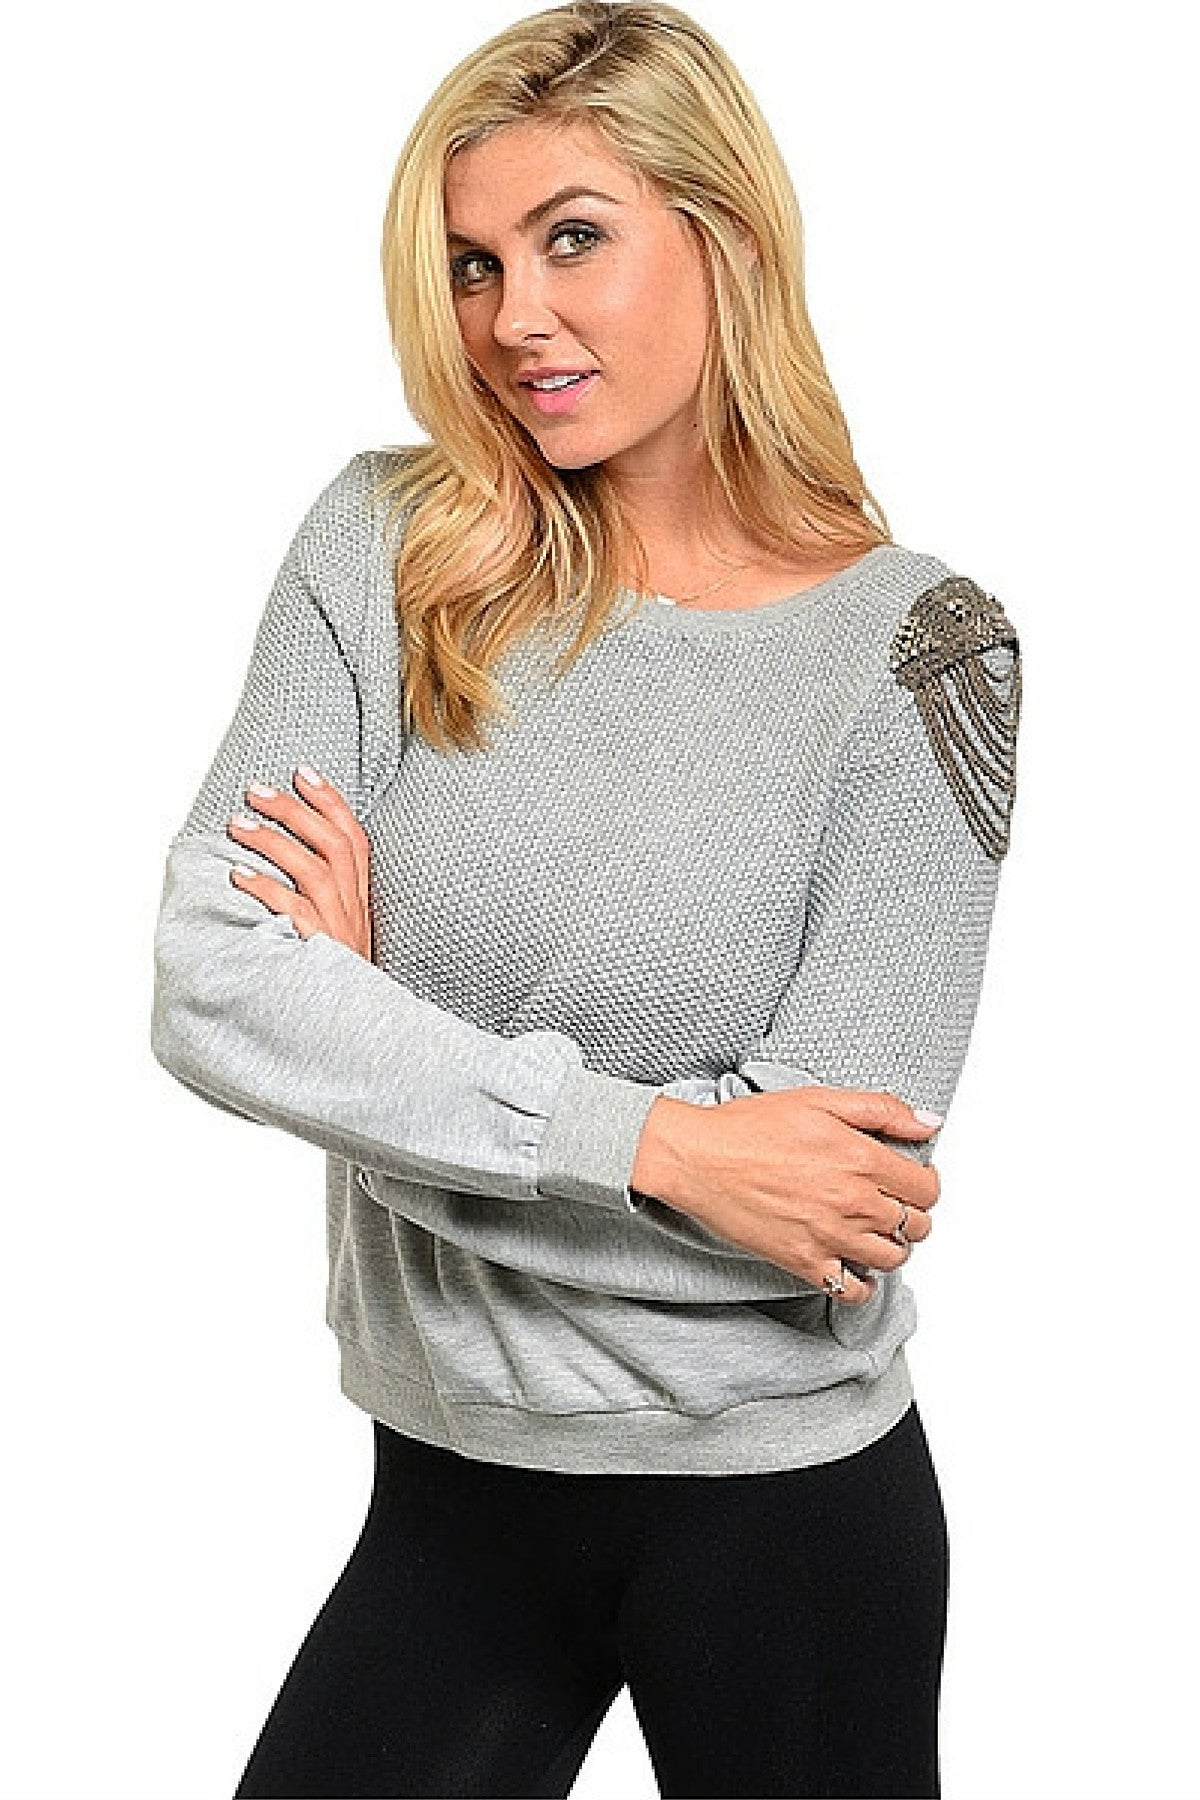 Grey Metallic Chain Sweater - Leather and Sequins - 2